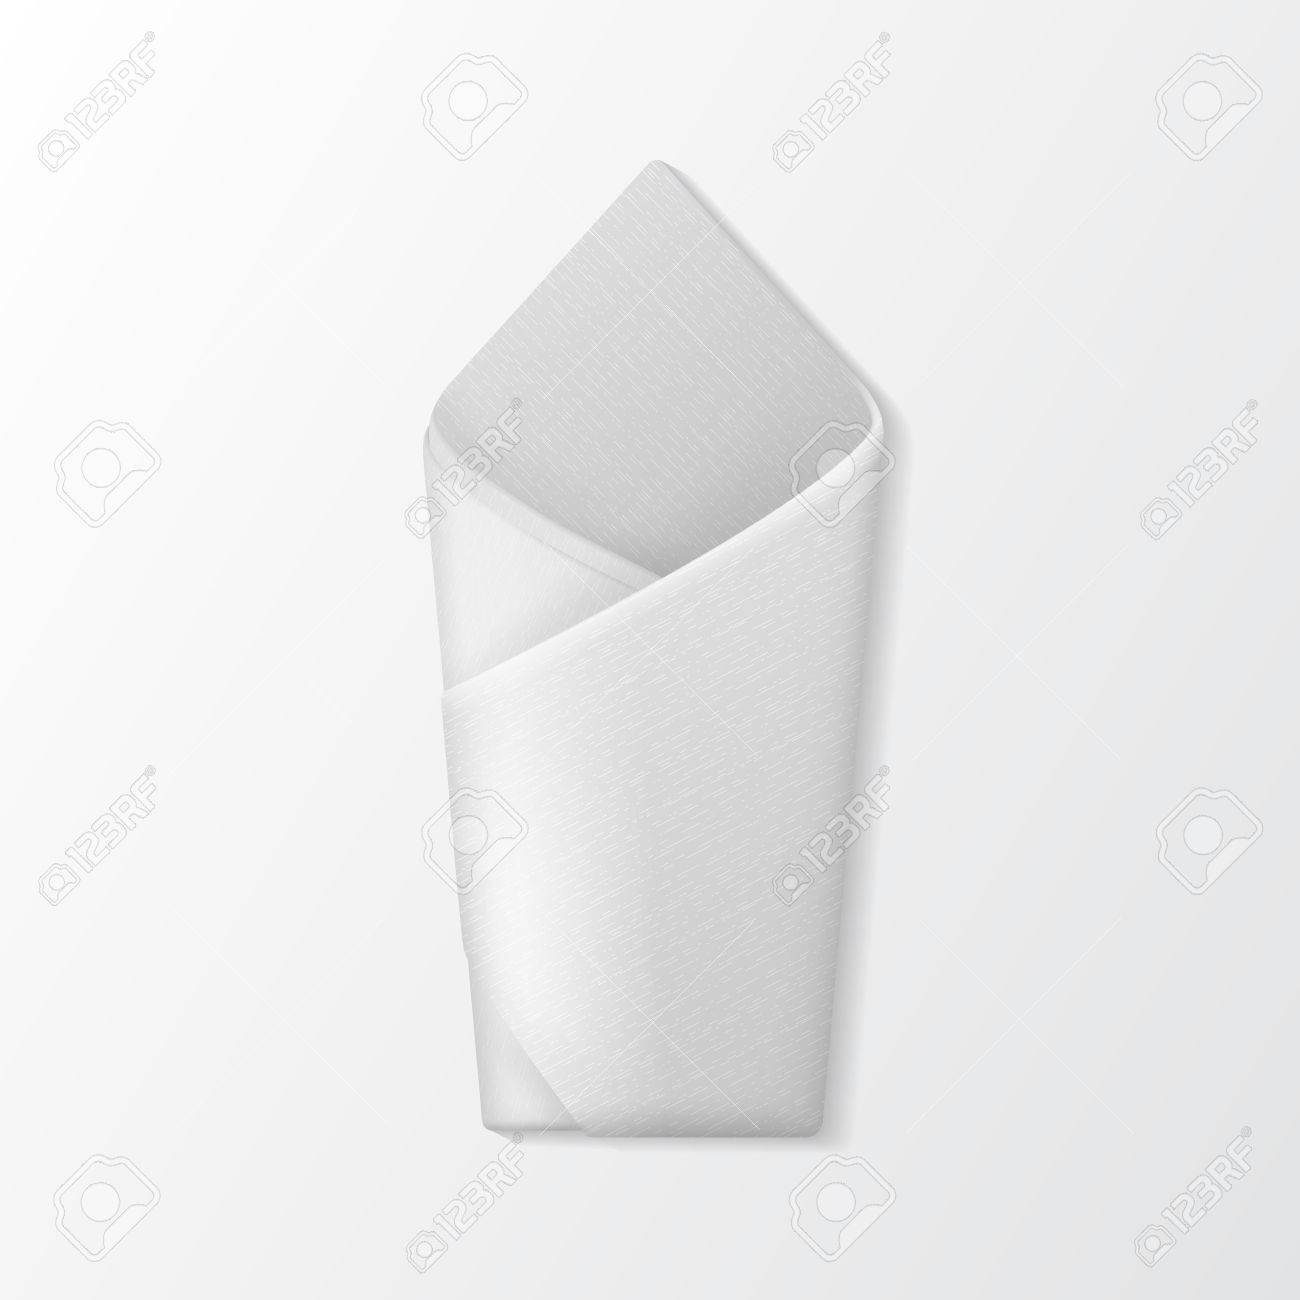 Vector White Folded Envelope Napkin Top View Isolated On White Royalty Free Cliparts Vectors And Stock Illustration Image 62091154